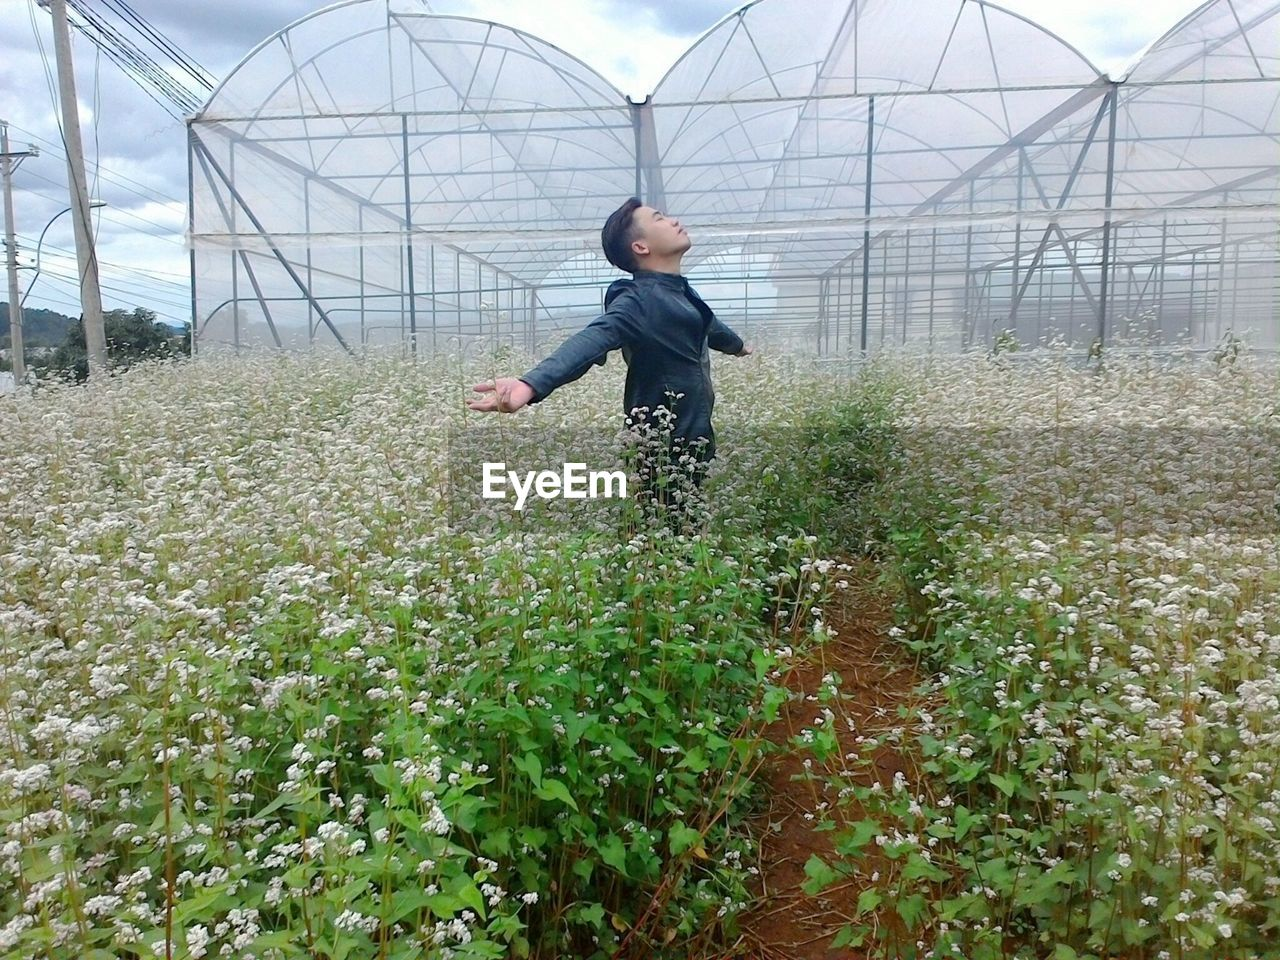 Young man standing with arms outstretched amidst flowering plants against greenhouse